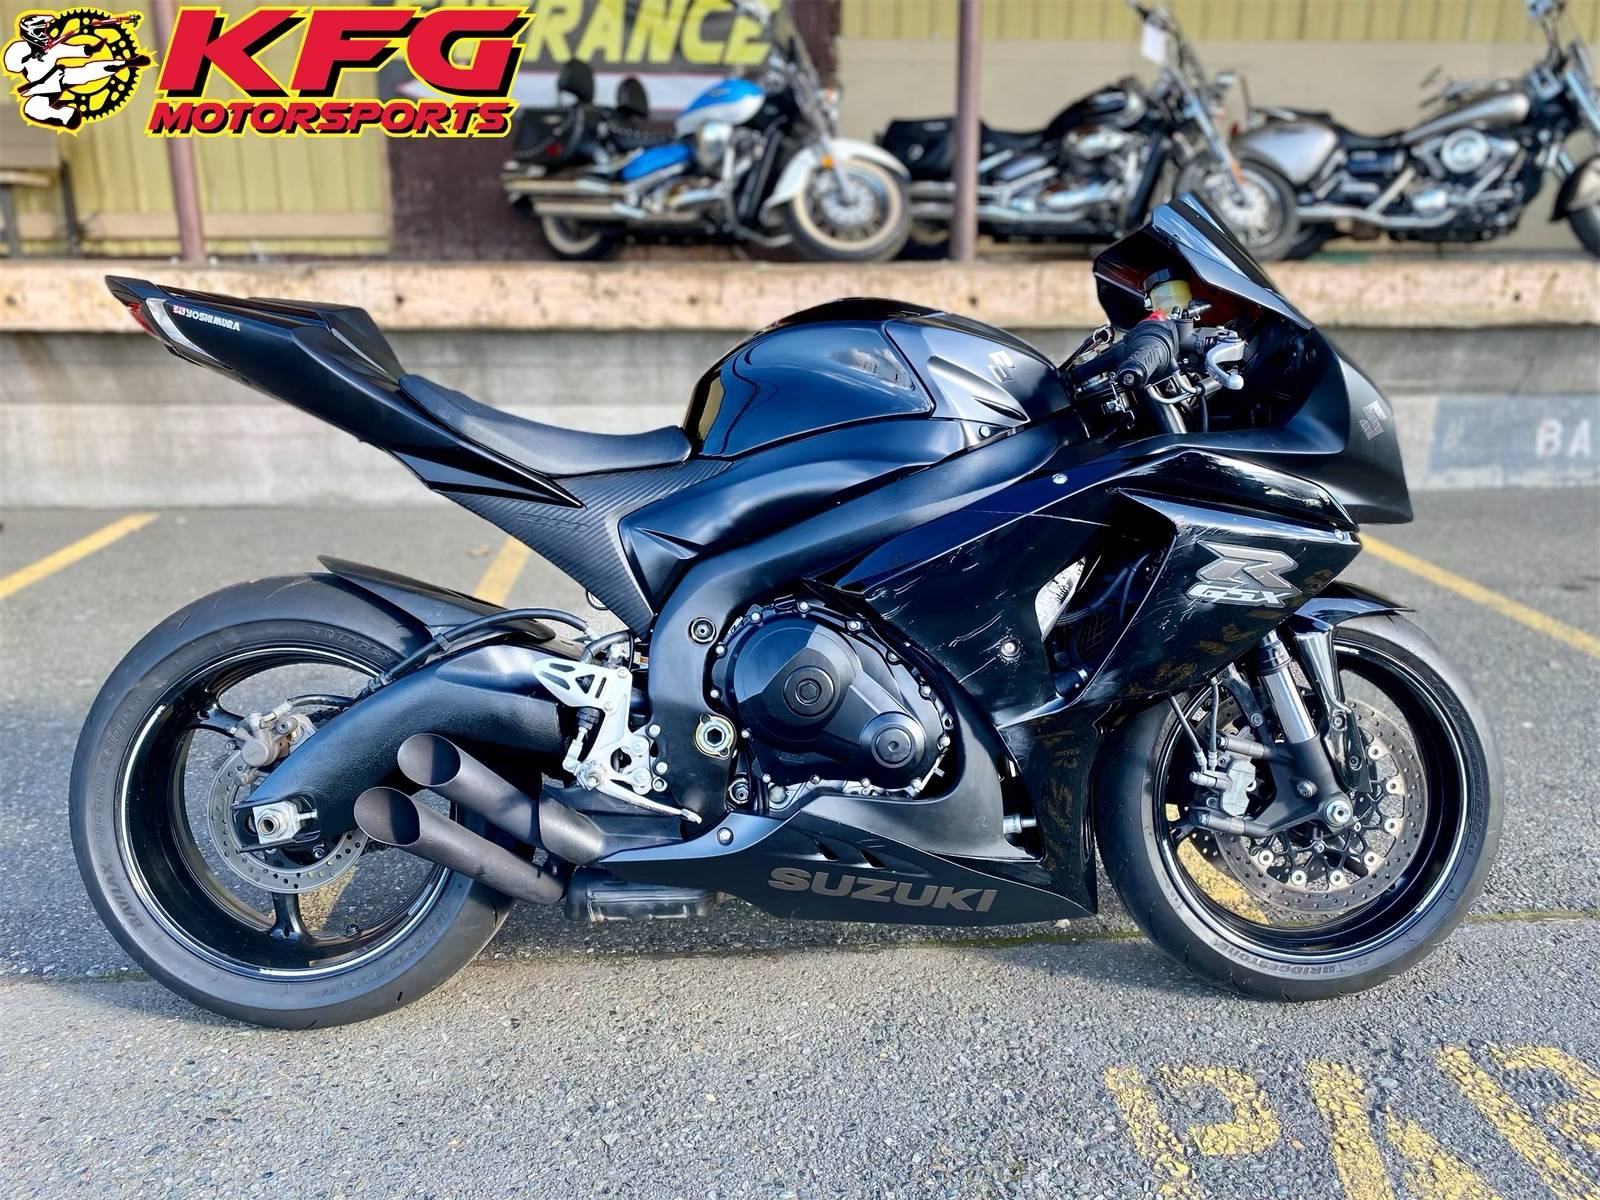 2016 Suzuki GSX-R1000 in Auburn, Washington - Photo 1